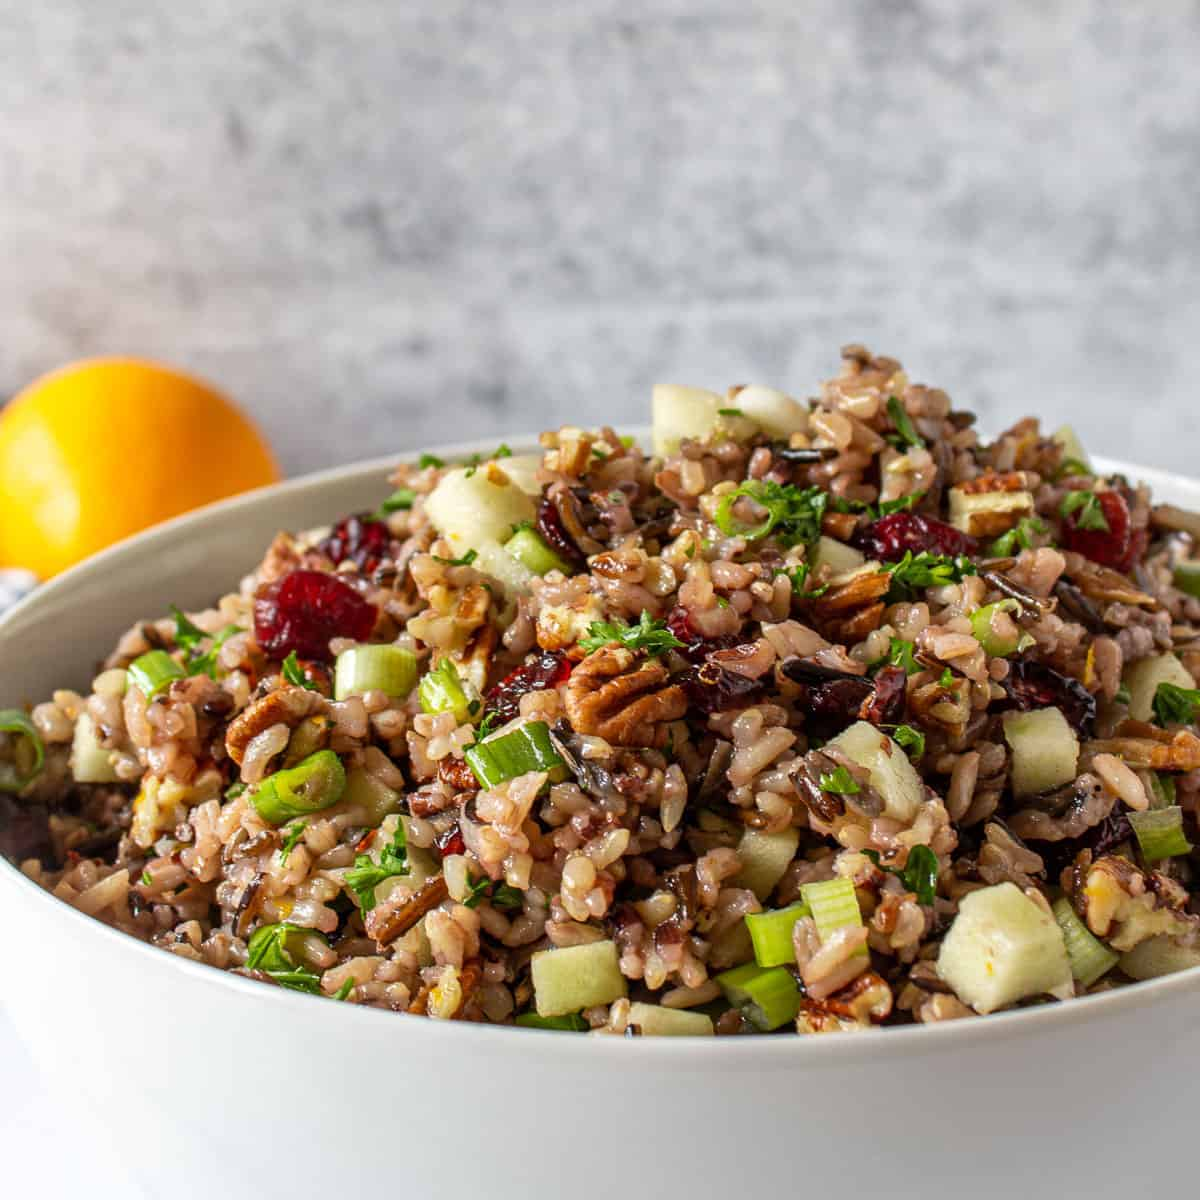 A white bowl filled with a wild rice salad with pecans and cranberries.